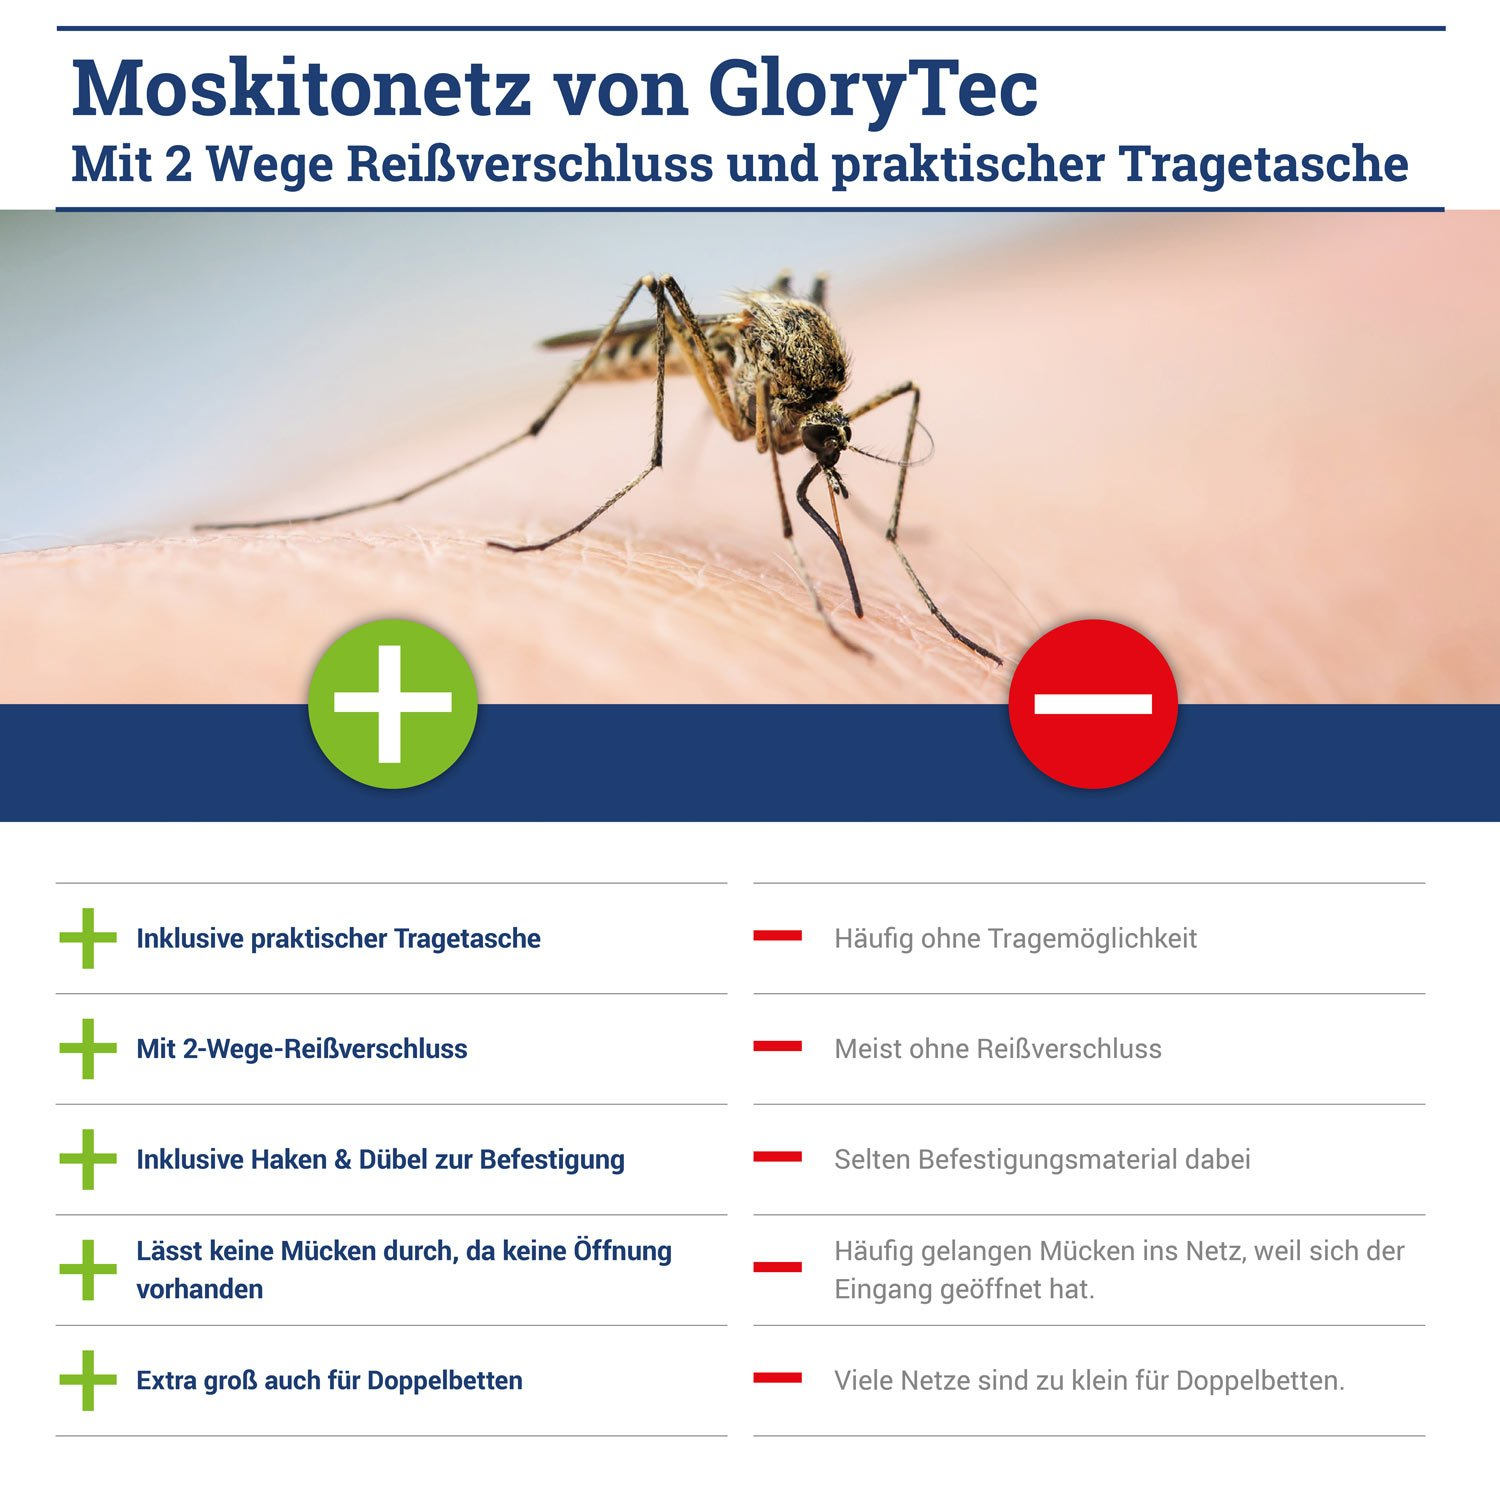 Mosquito Net - COMPARISON WINNER 2018* - With 2-Way Zipper for Double Bed and Single Bed - Plus Travel Carrying Bag - XXL Mosquito Net Protects Effectively Against Insects and Mosquitoes - Ideal for Travelling - by GloryTec